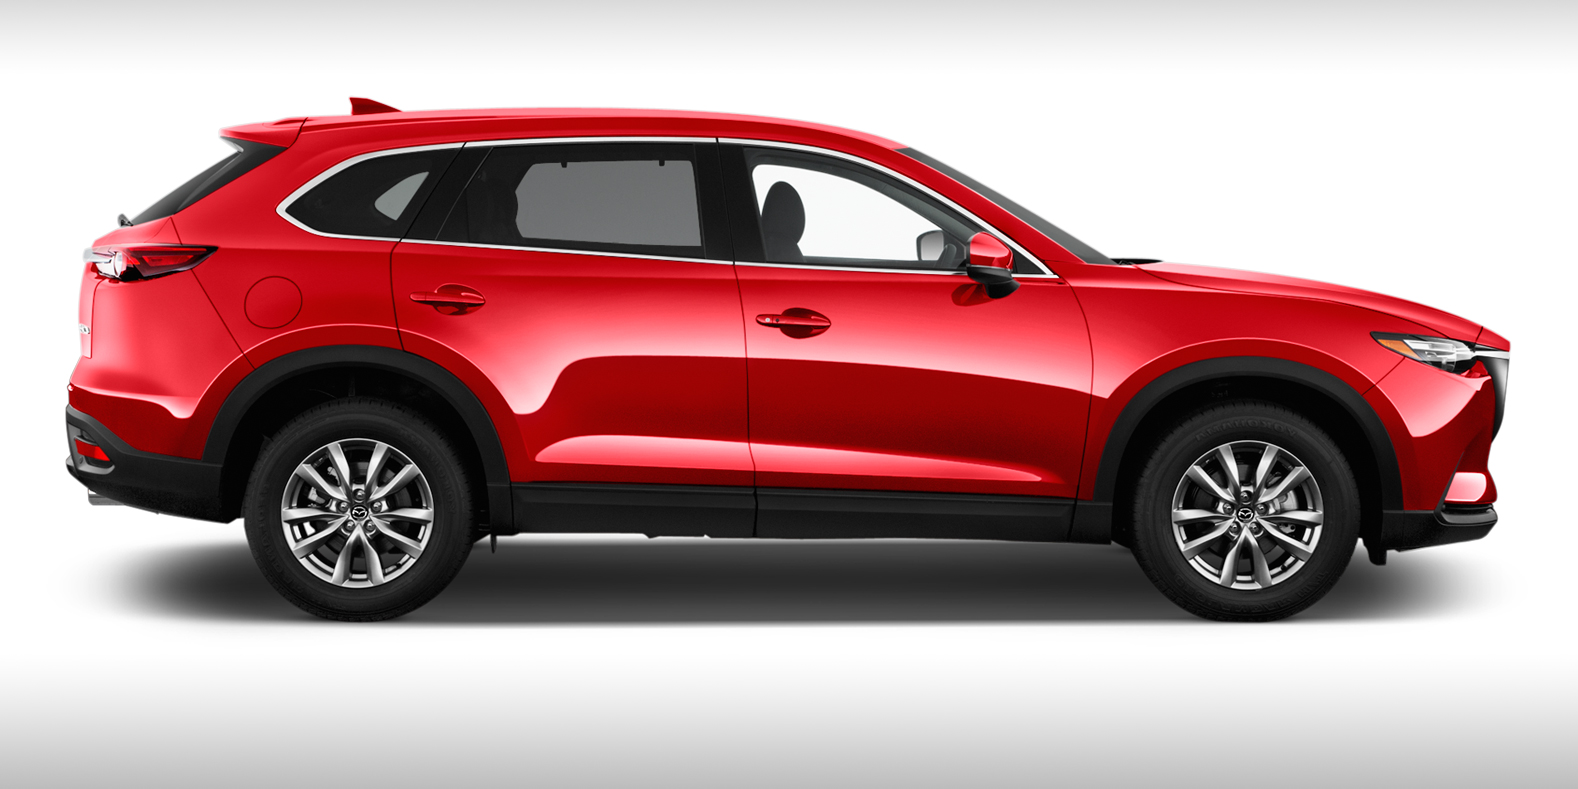 Mazda Cx 9 >> 2018 Mazda CX-8 styling revealed - Photos (1 of 5)